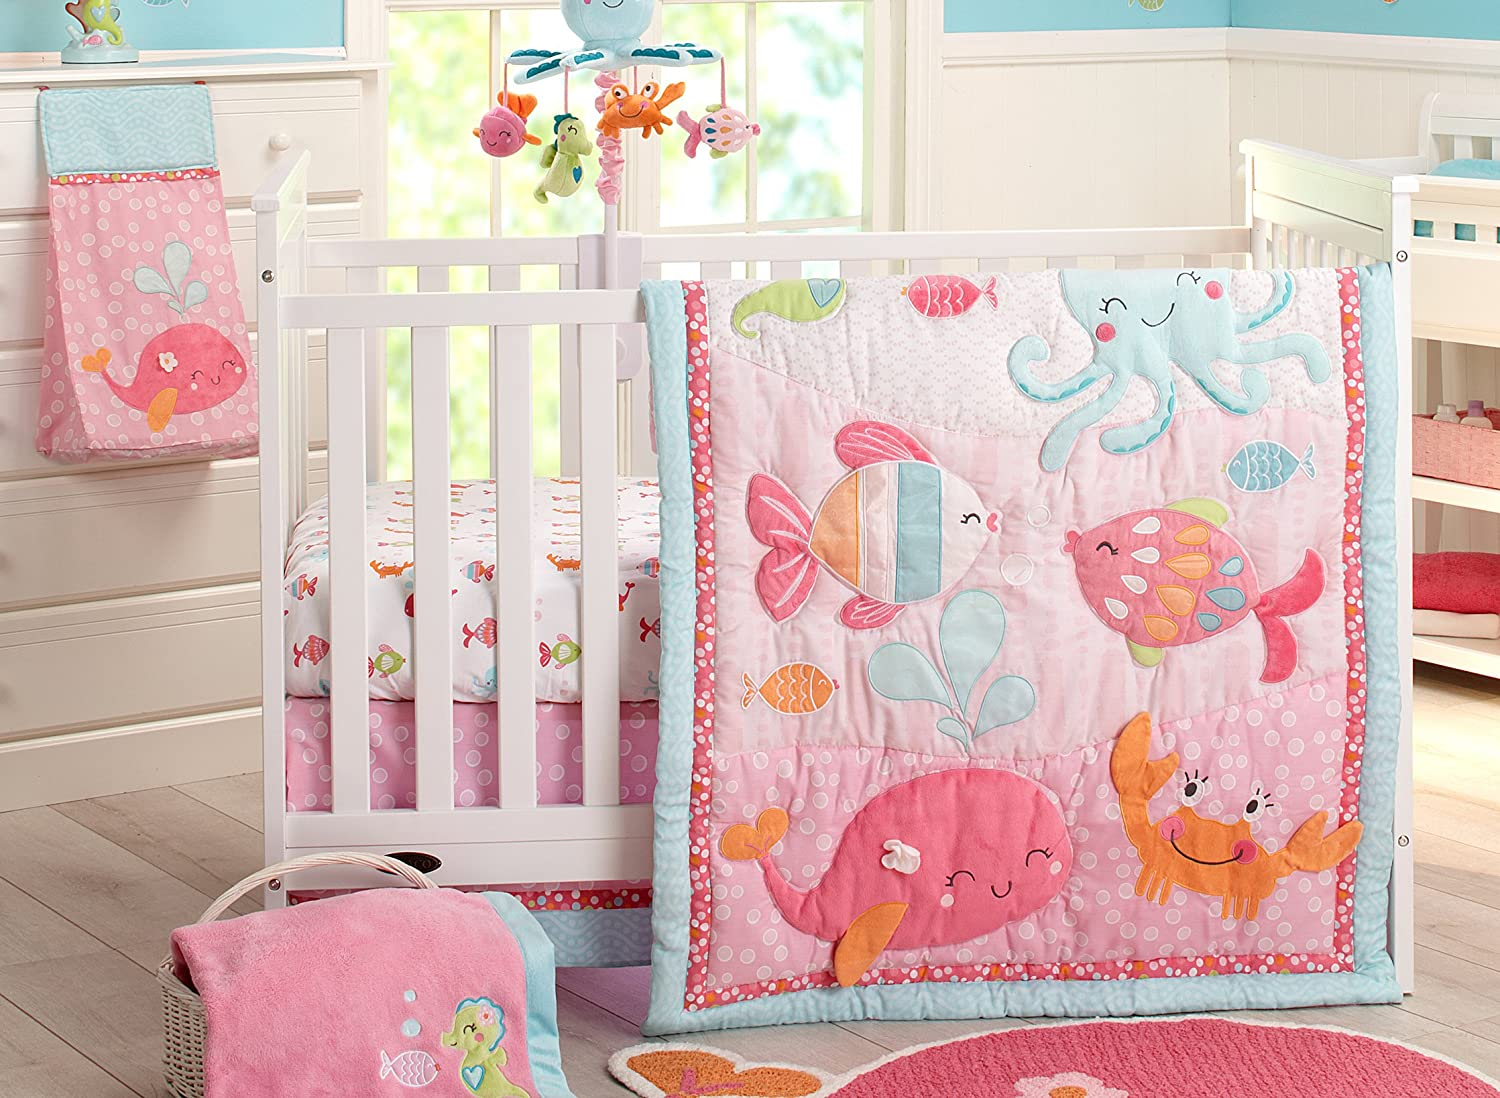 Carter's Sea Collection 4 Piece Crib Set, Pink/Blue/Turquoise by Carter's   B00OK127P6